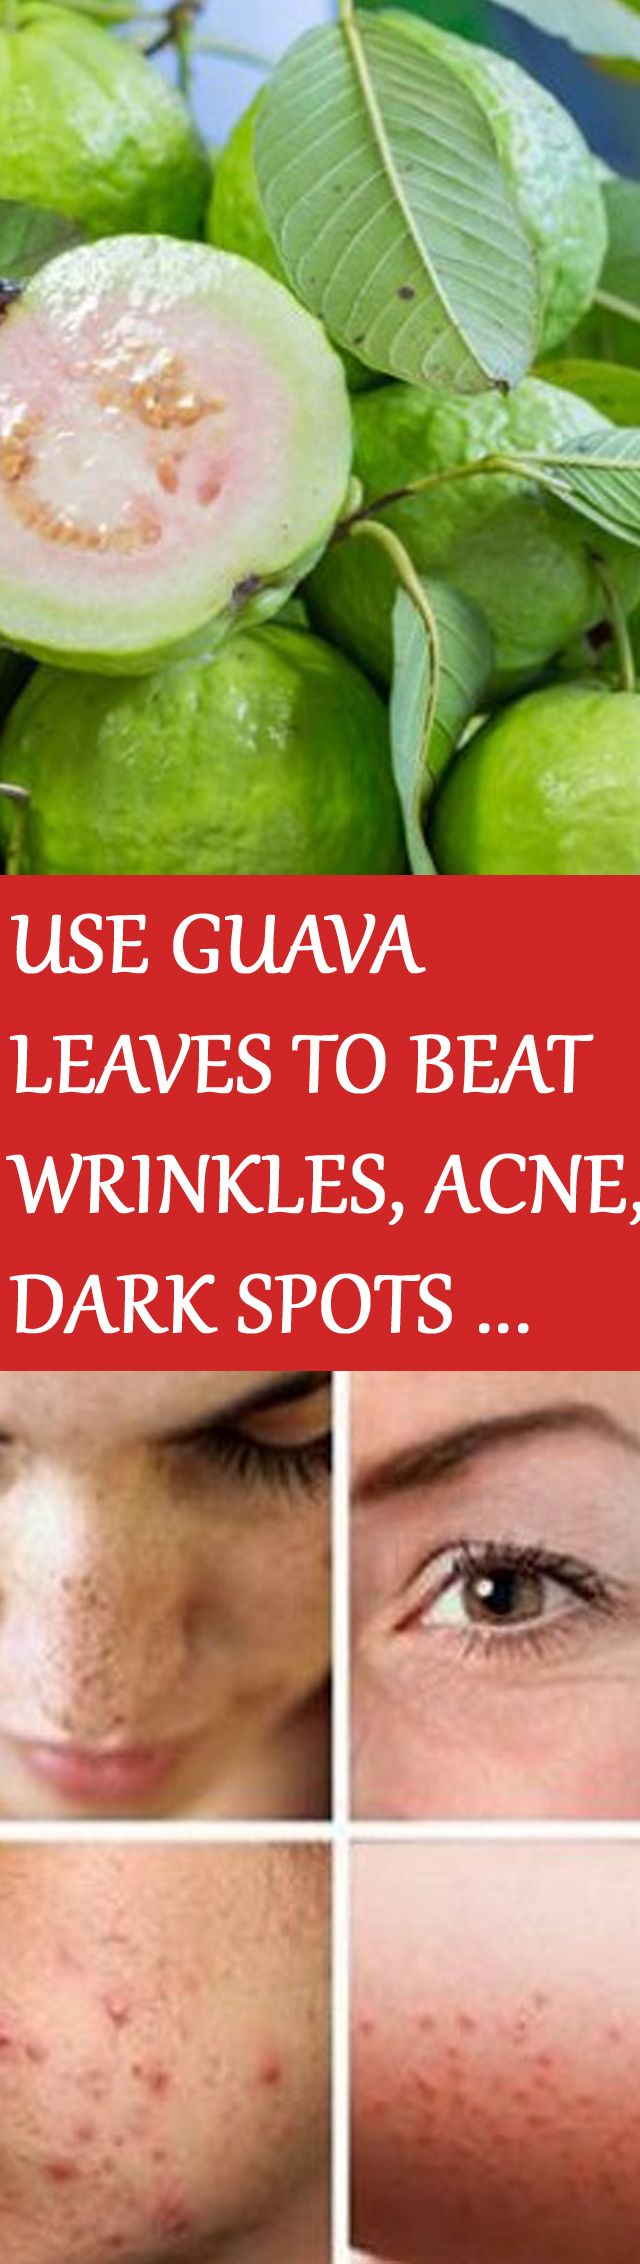 USE GUAVA LEAVES TO BEAT WRINKLES, ACNE, DARK SPOTS AND SKIN ALLERGIES For instructions click on the picture :D